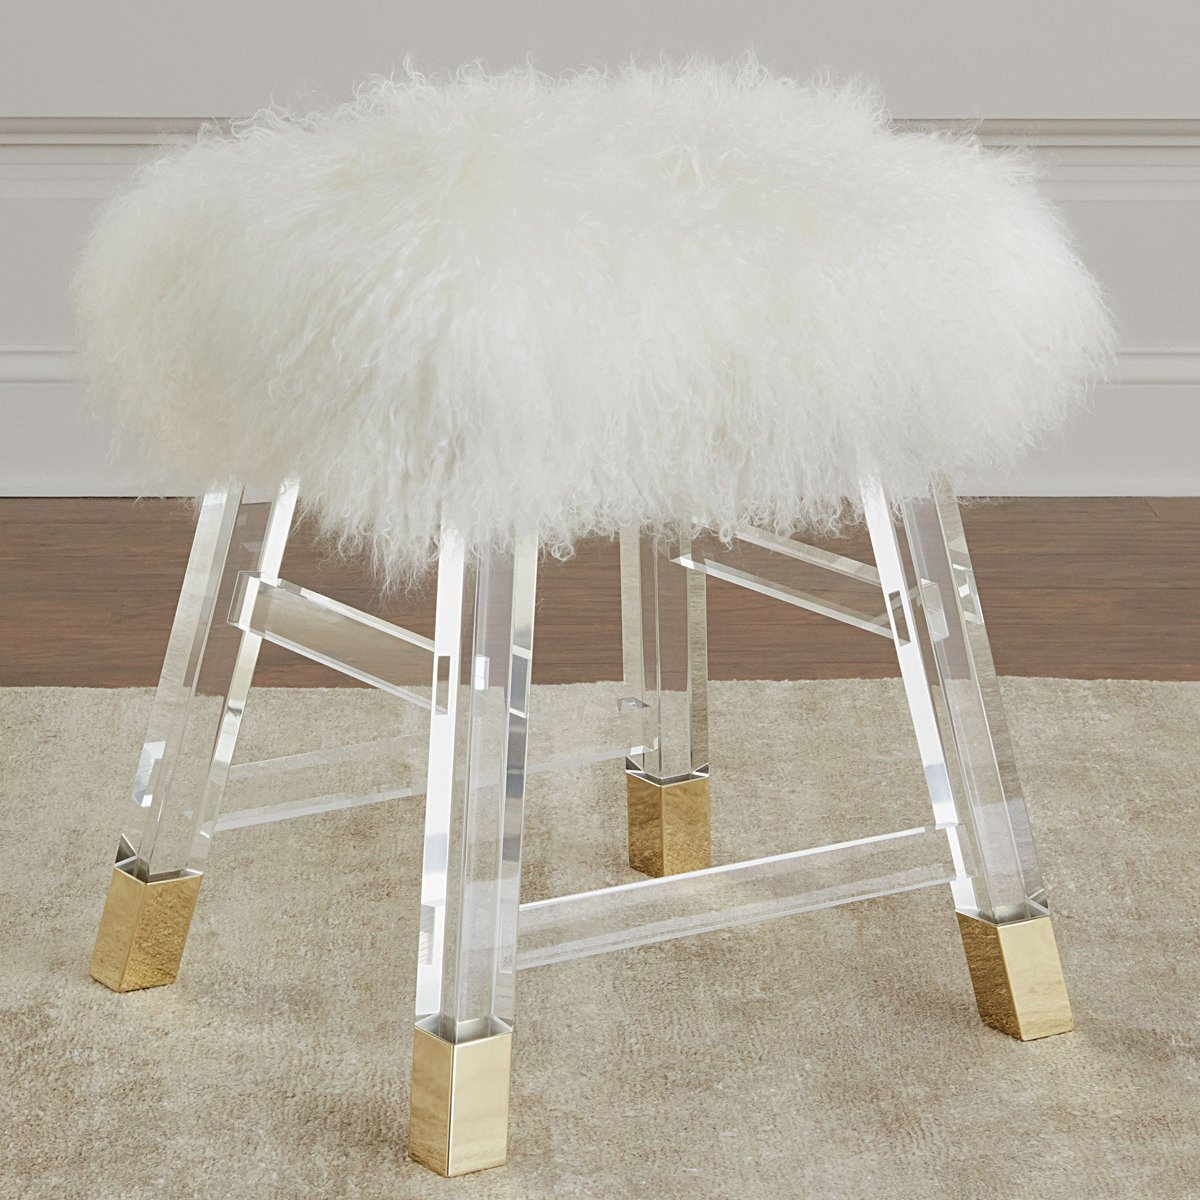 Ava White Faux Fur Ottoman Modern Acrylic Stool Upholstered Living Room  Entryway Bedroom